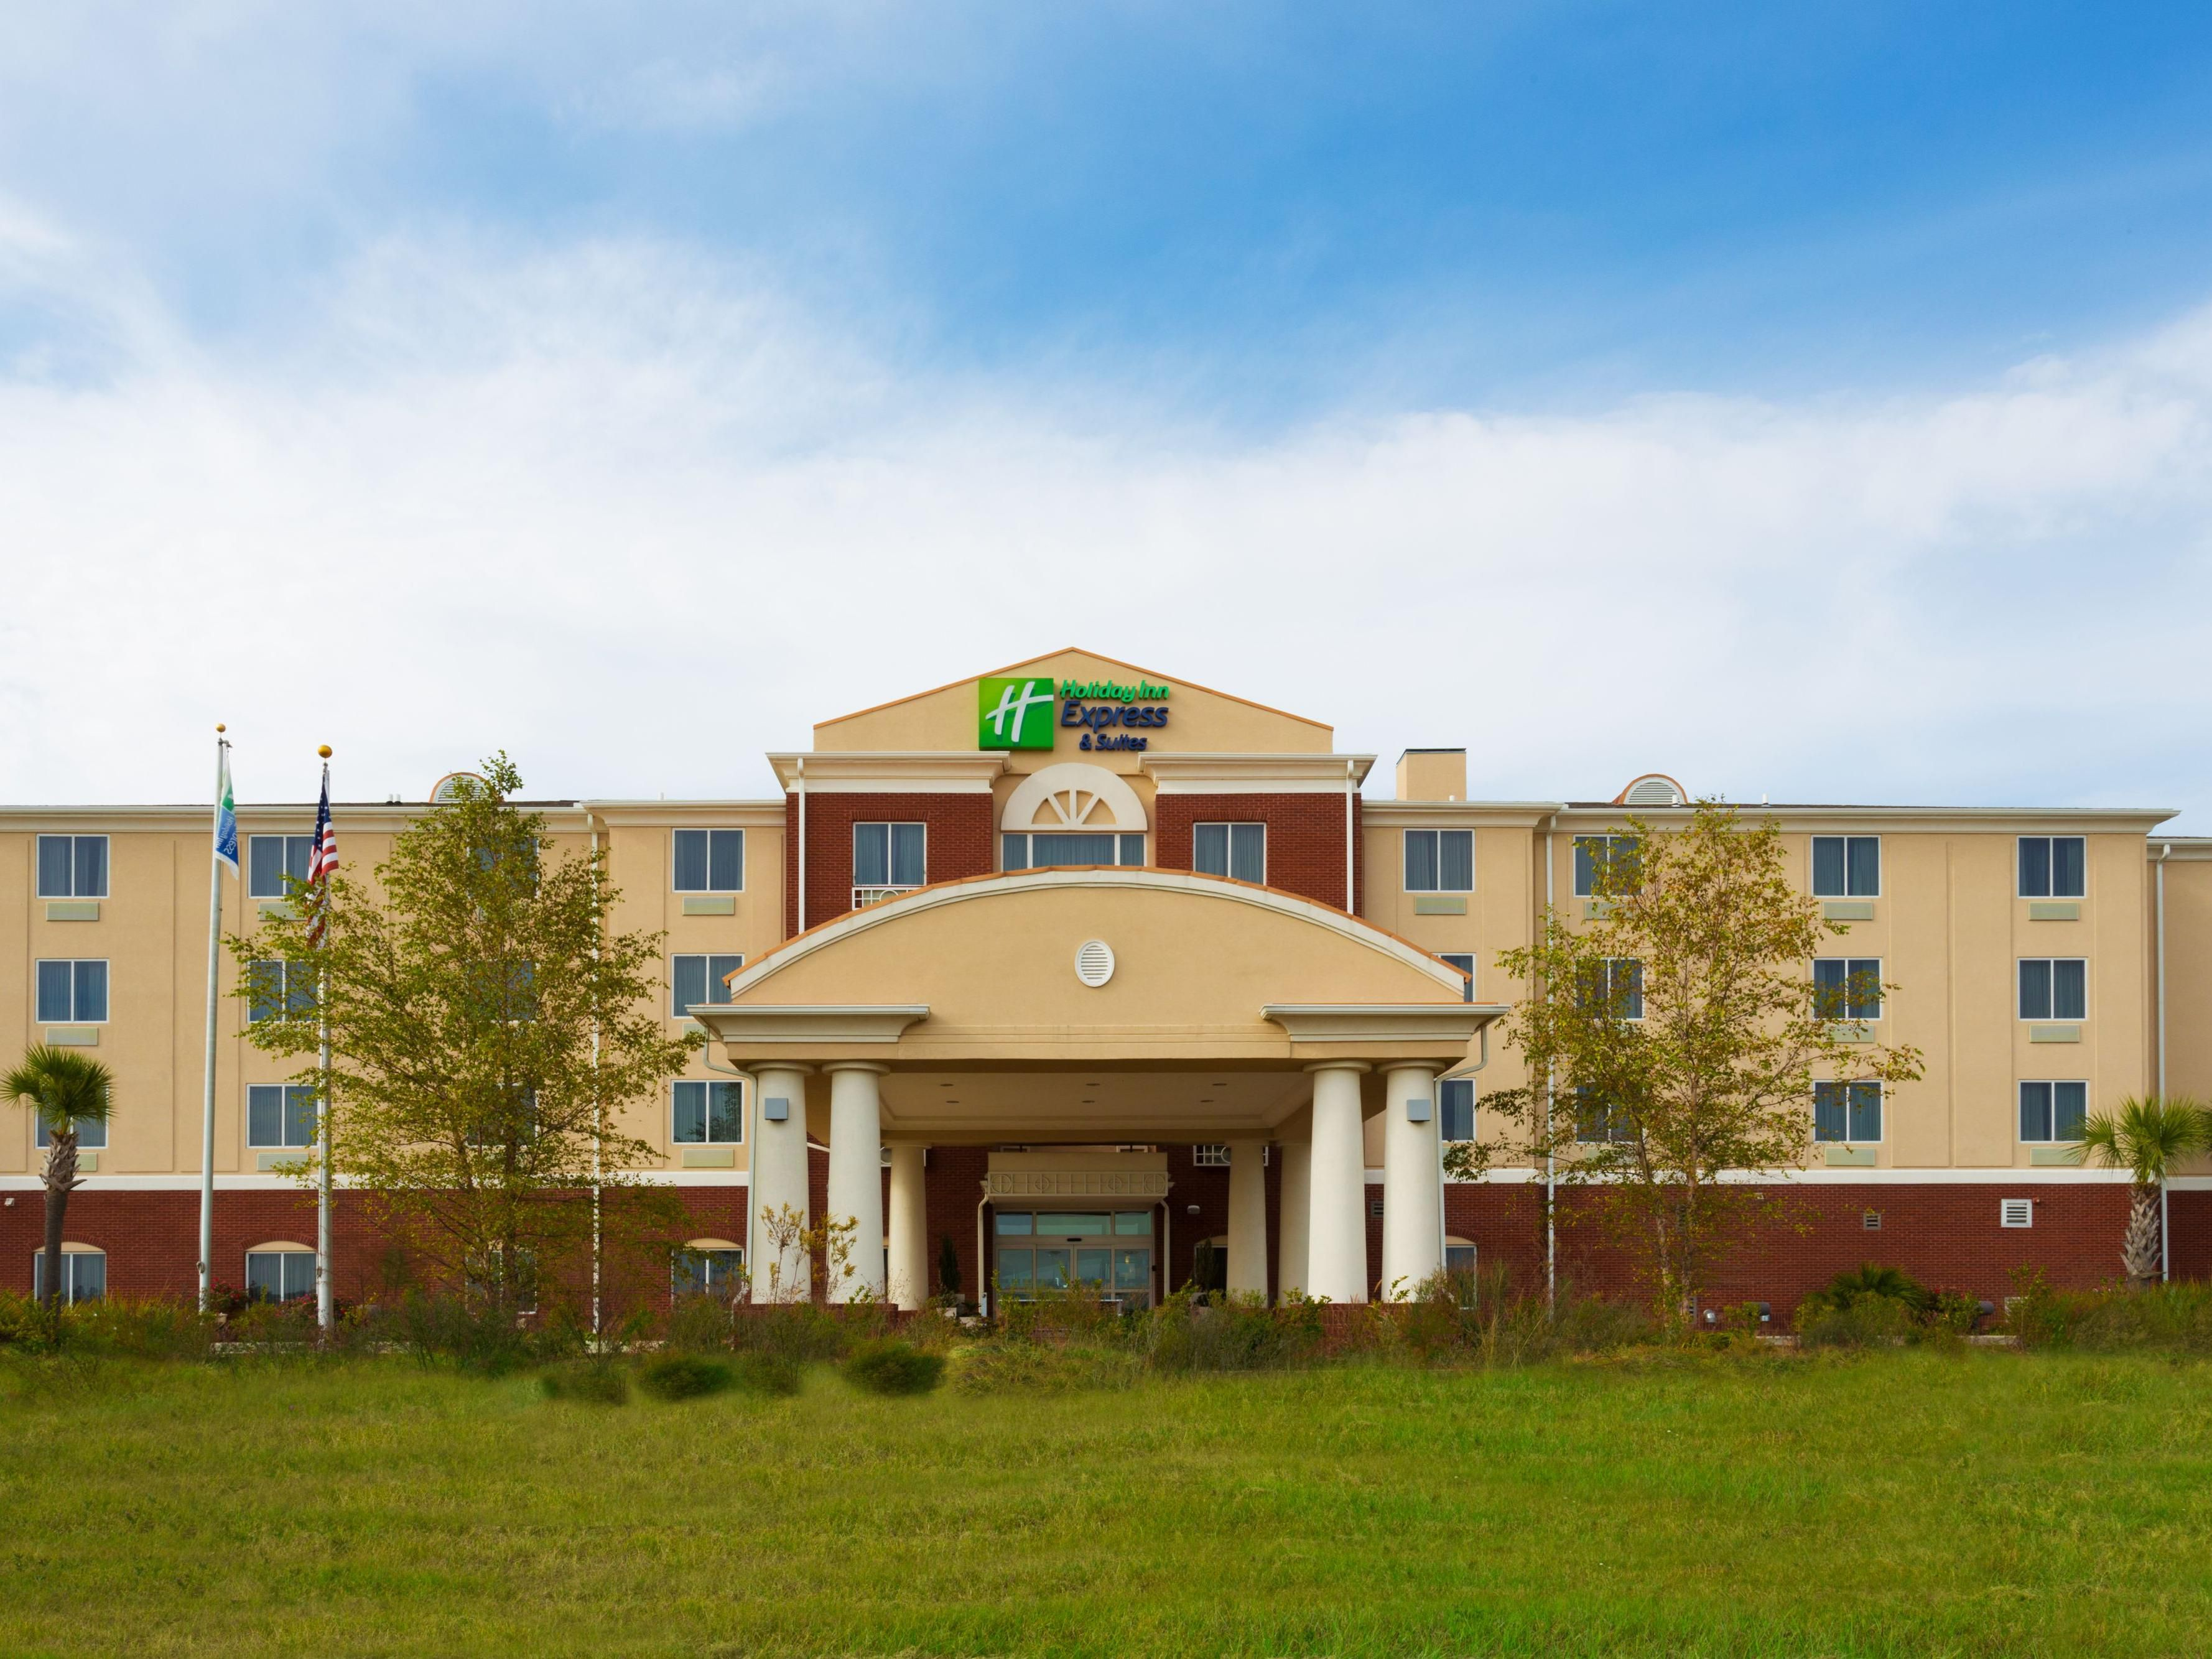 Pleasing Holiday Inn Express Suites Moultrie Hotel By Ihg Download Free Architecture Designs Embacsunscenecom